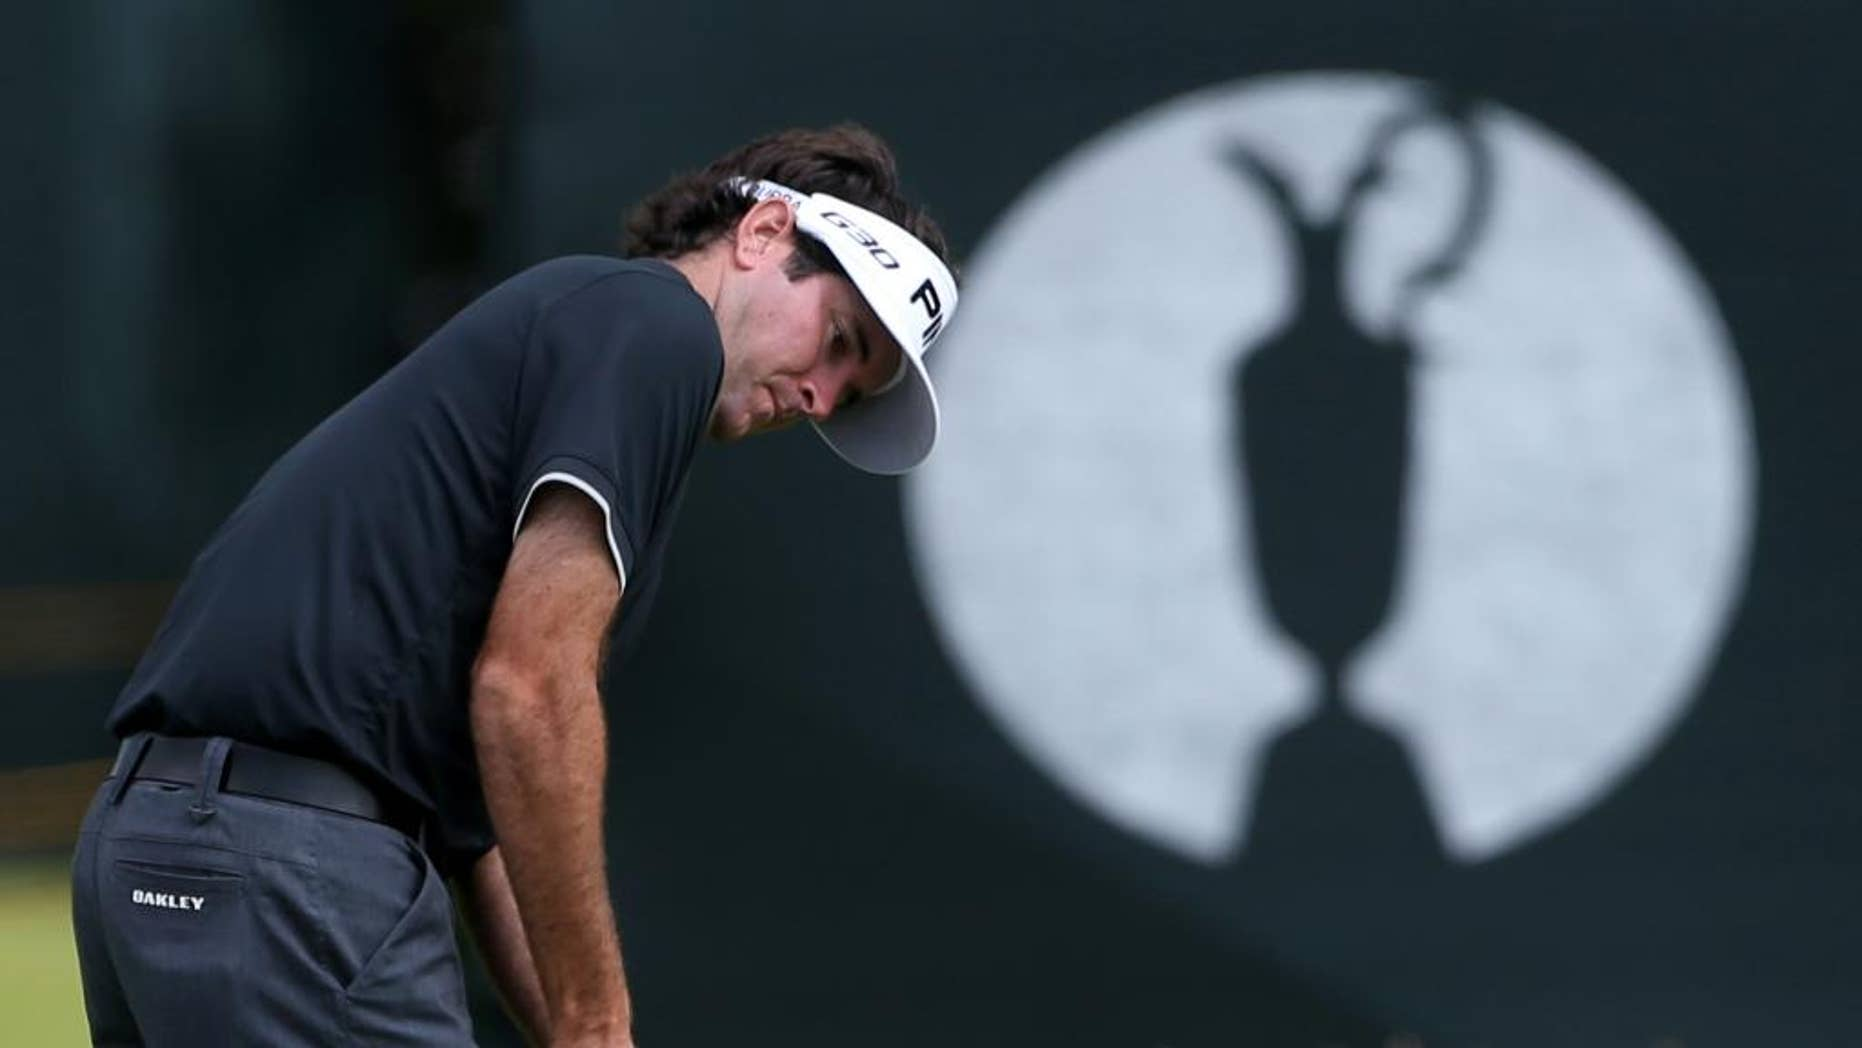 Bubba Watson of the US putts on the 16th green during a practice round ahead of the British Open Golf championship at the Royal Liverpool golf club, Hoylake, England, Wednesday July 16, 2014. The British Open Golf championship starts Thursday July 17. (AP Photo/Peter Morrison)